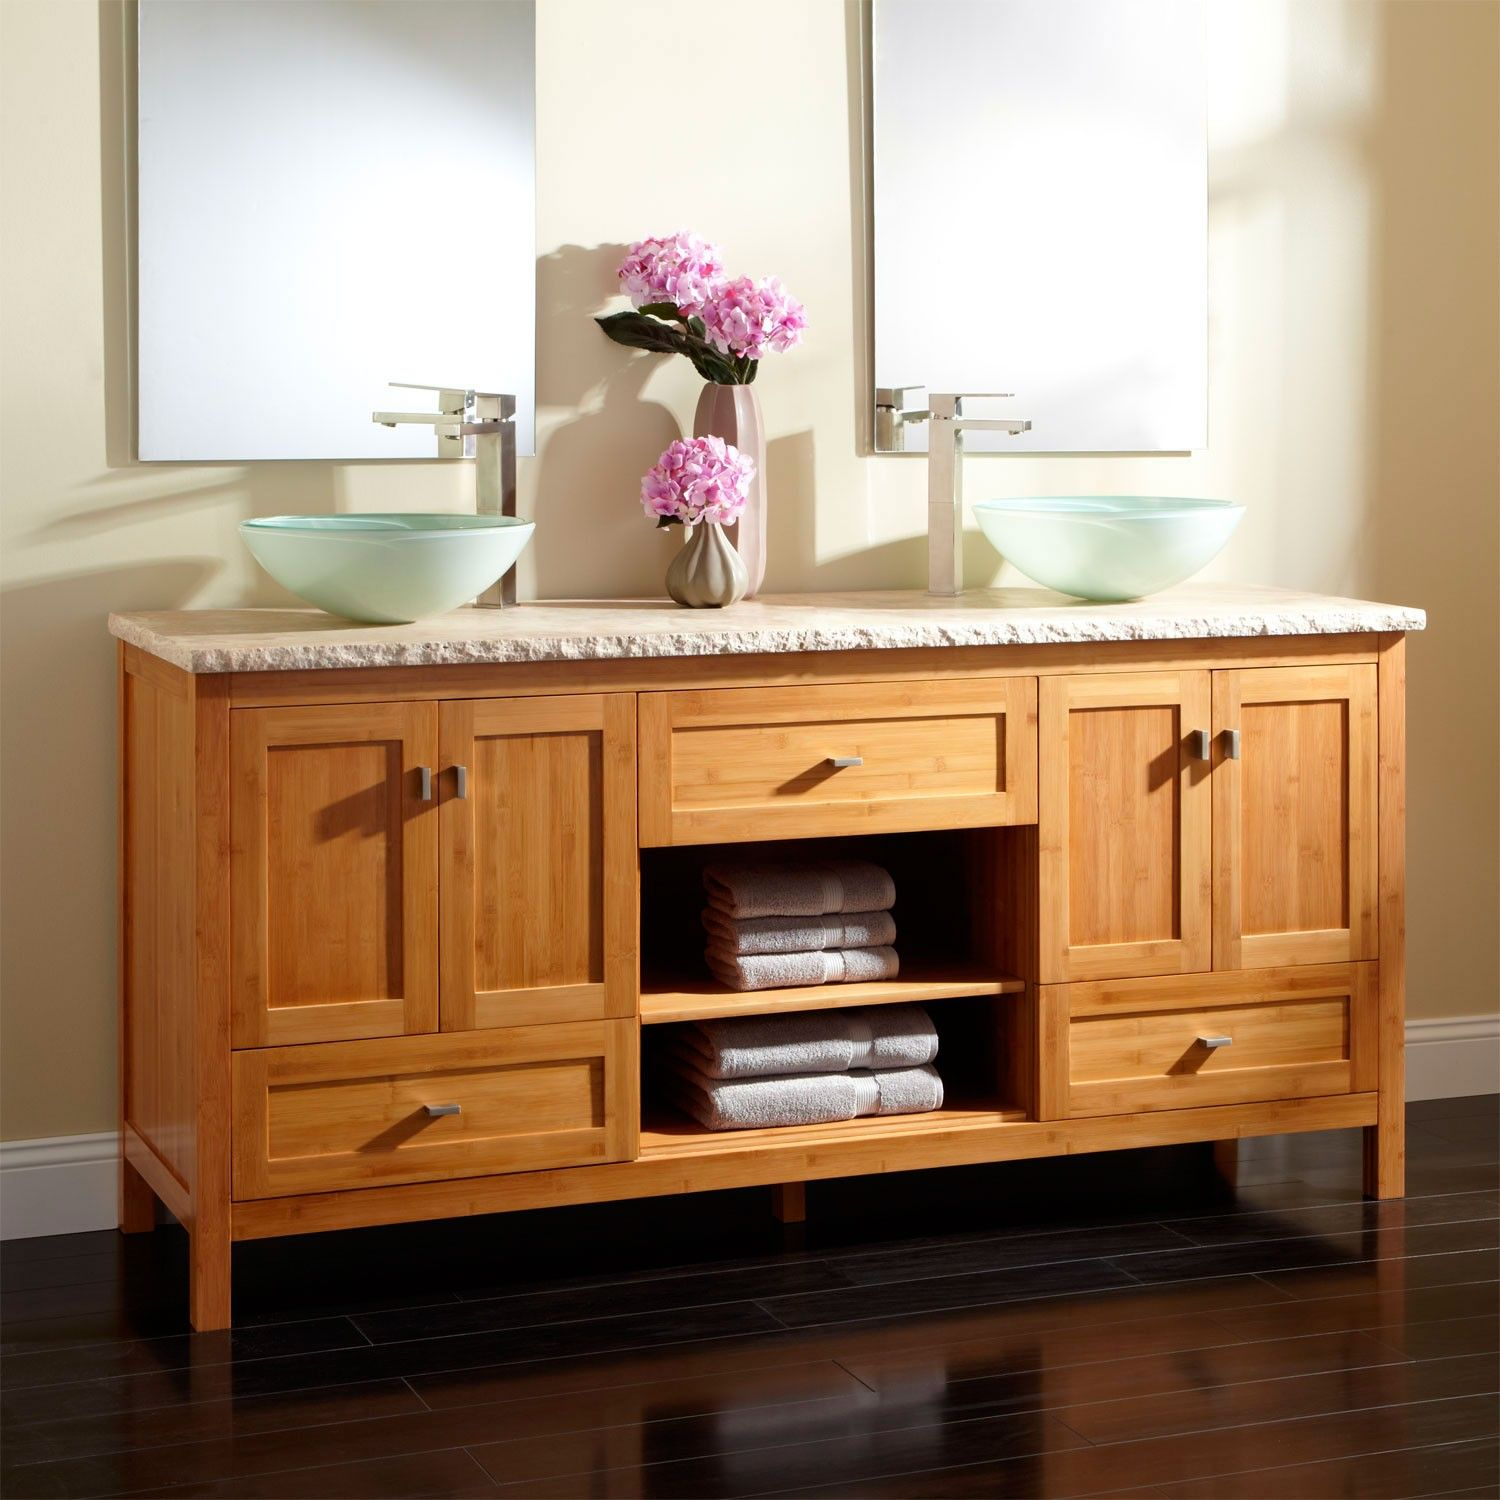 fresh combo bathroom sink vanity double with cabinets of vessel small